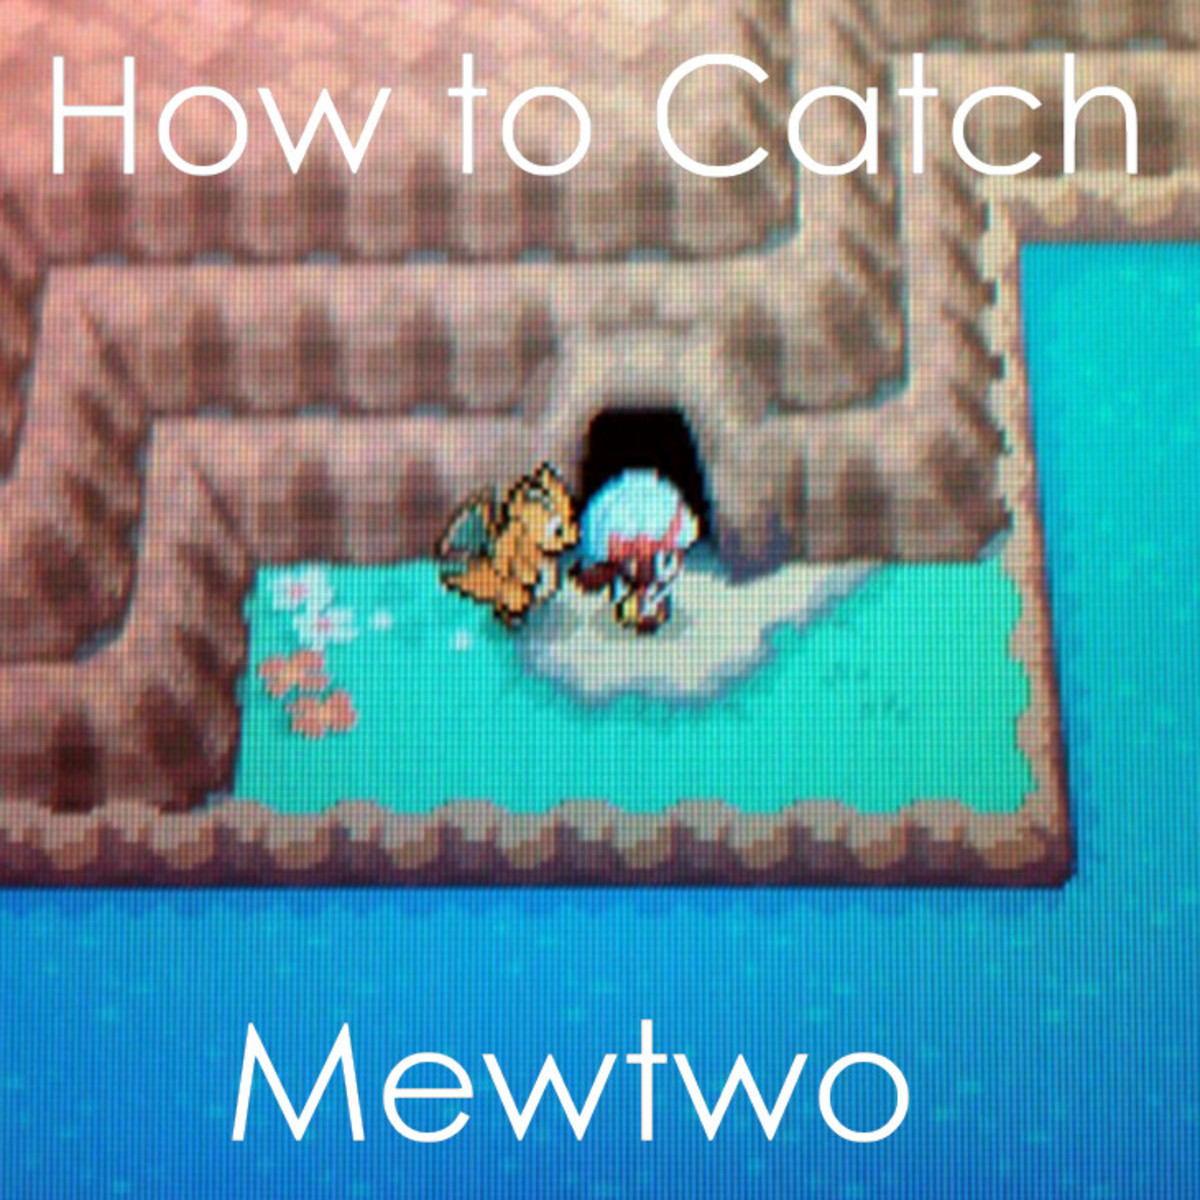 Learn how and where to catch Mewtwo with suggested Pokémon moves and more.